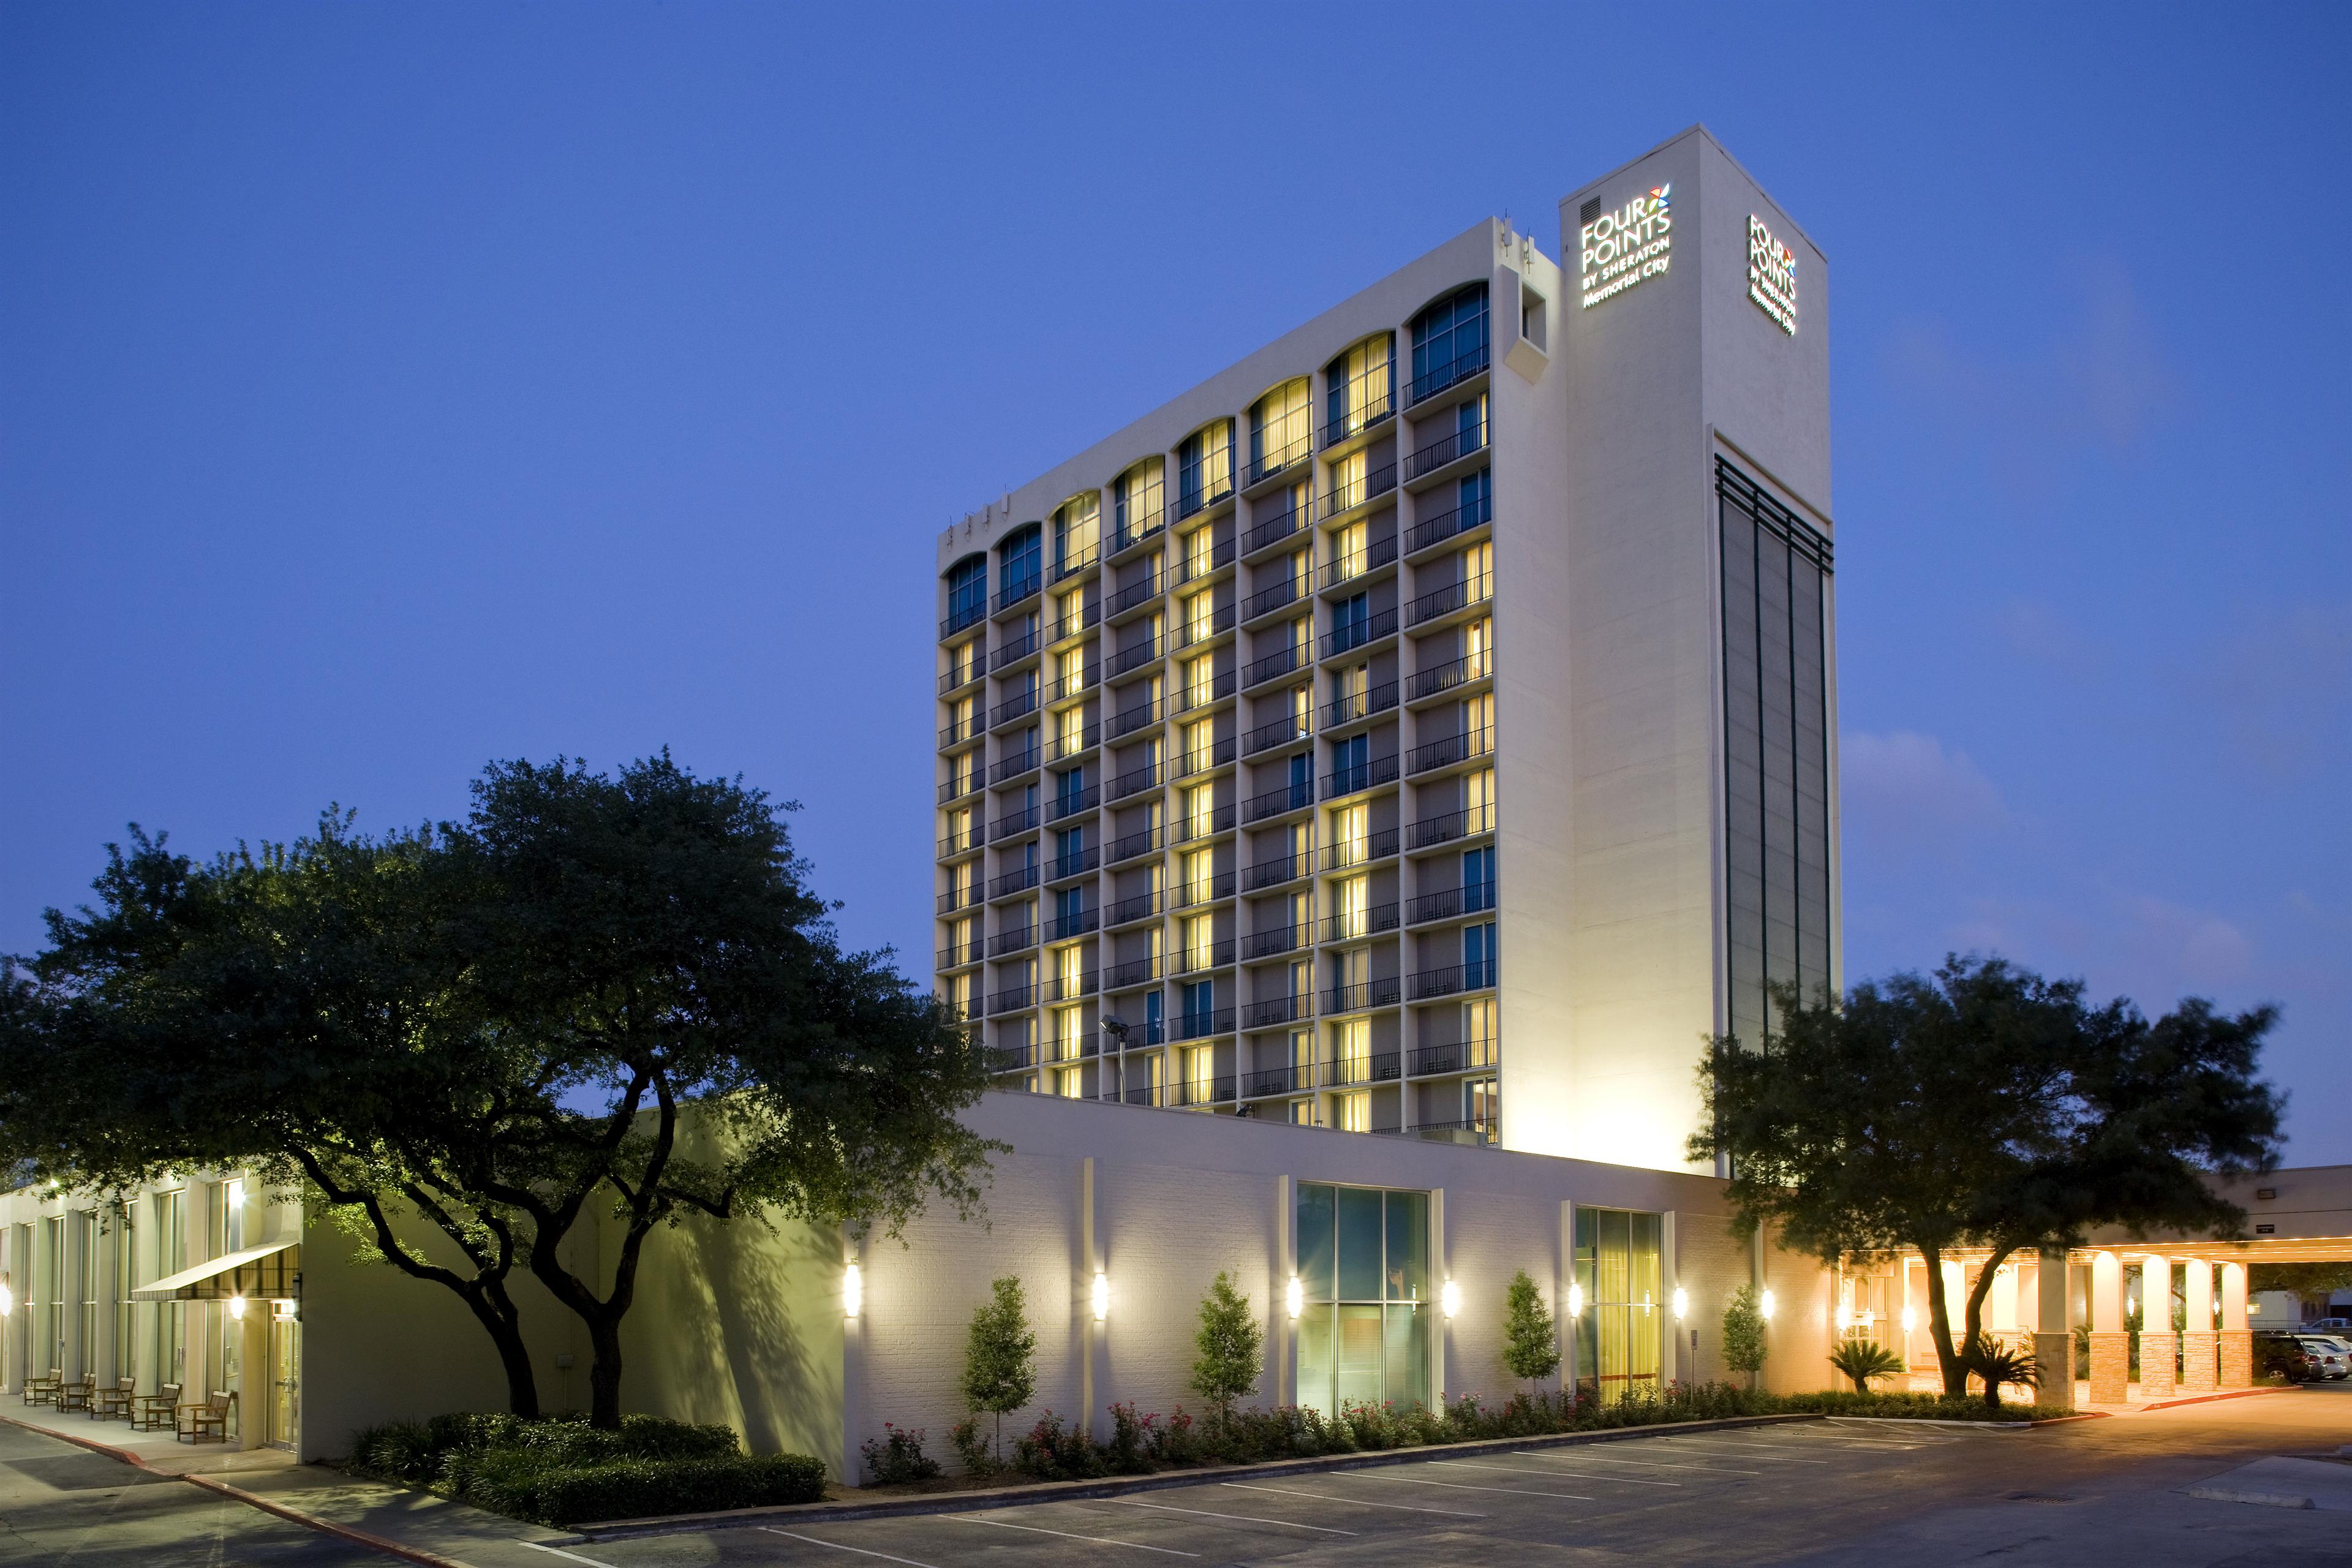 Four Points by Sheraton offers a great location on the corner of Katy Freeway and Beltway 8 (Sam Houston Tollroad). The Memorial Hermann Hospital complex and Memorial City Mall are easy to get to with their shuttle service. Offers guest rooms with 81, 2-room suites complete with parlor.